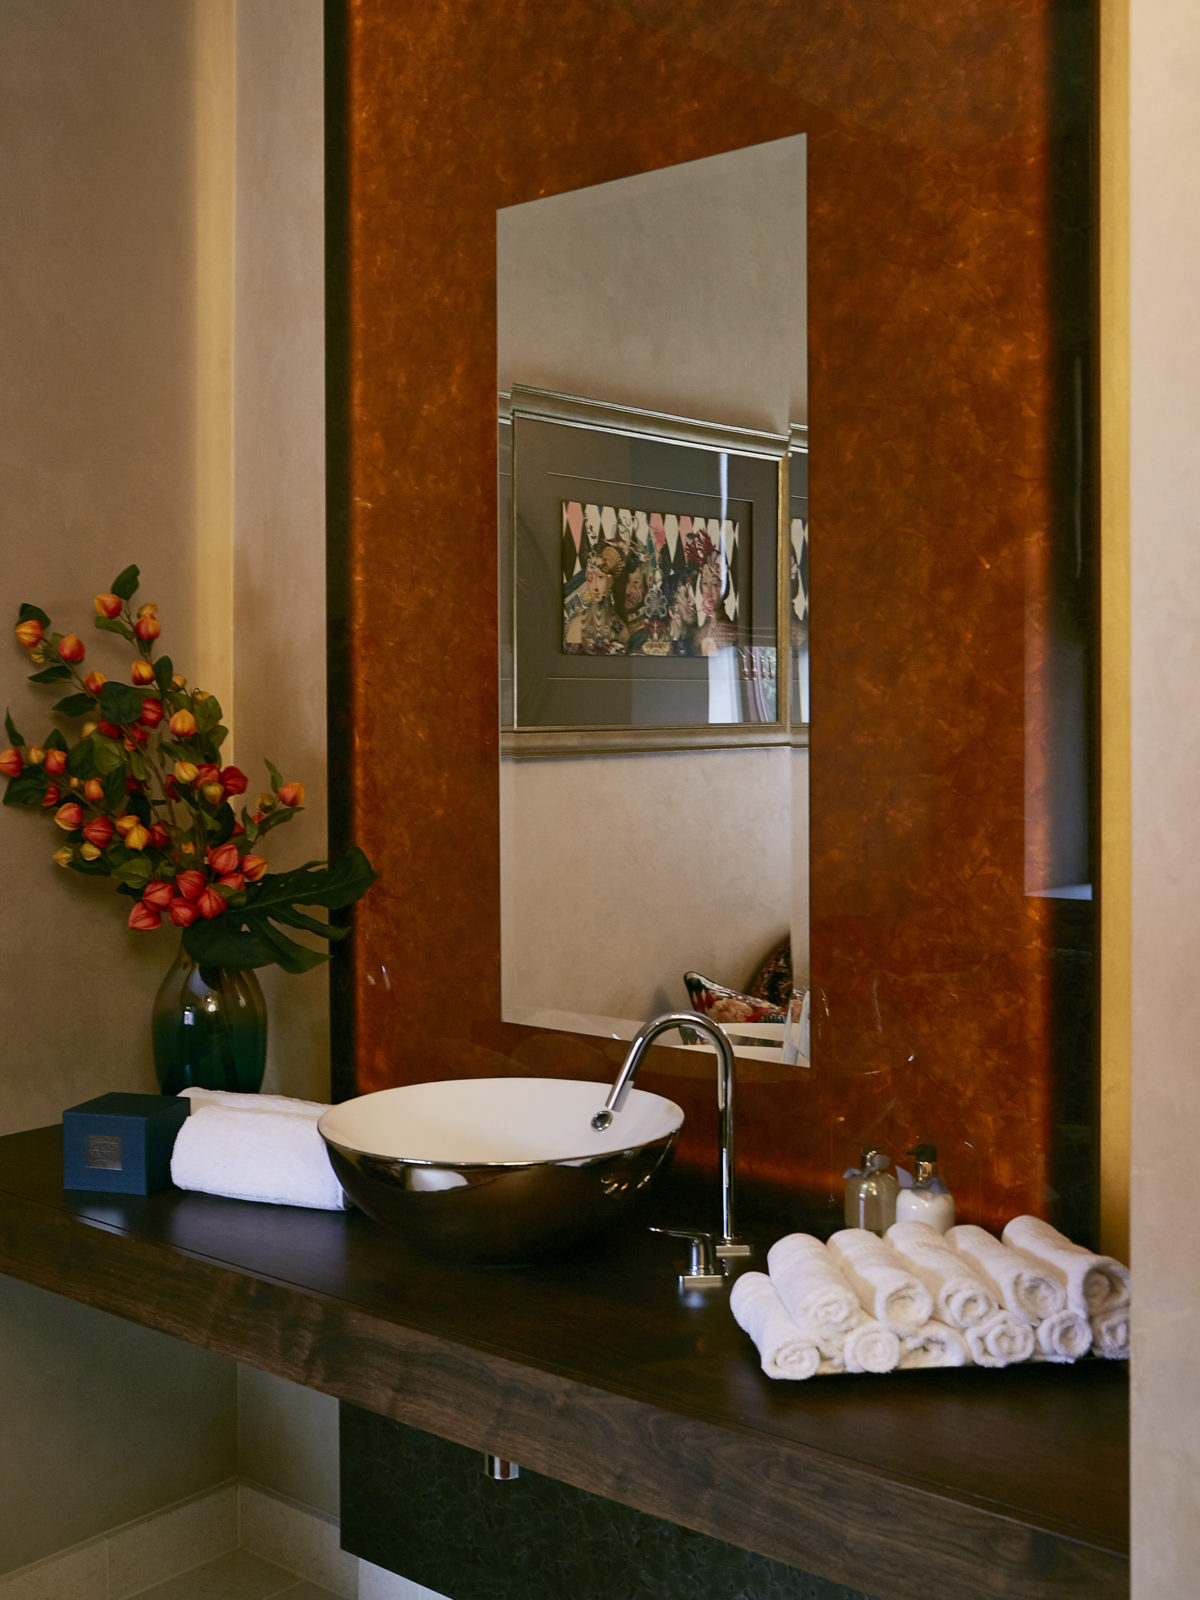 Walnut bathroom worktop with backlit recycled glass mirror wall